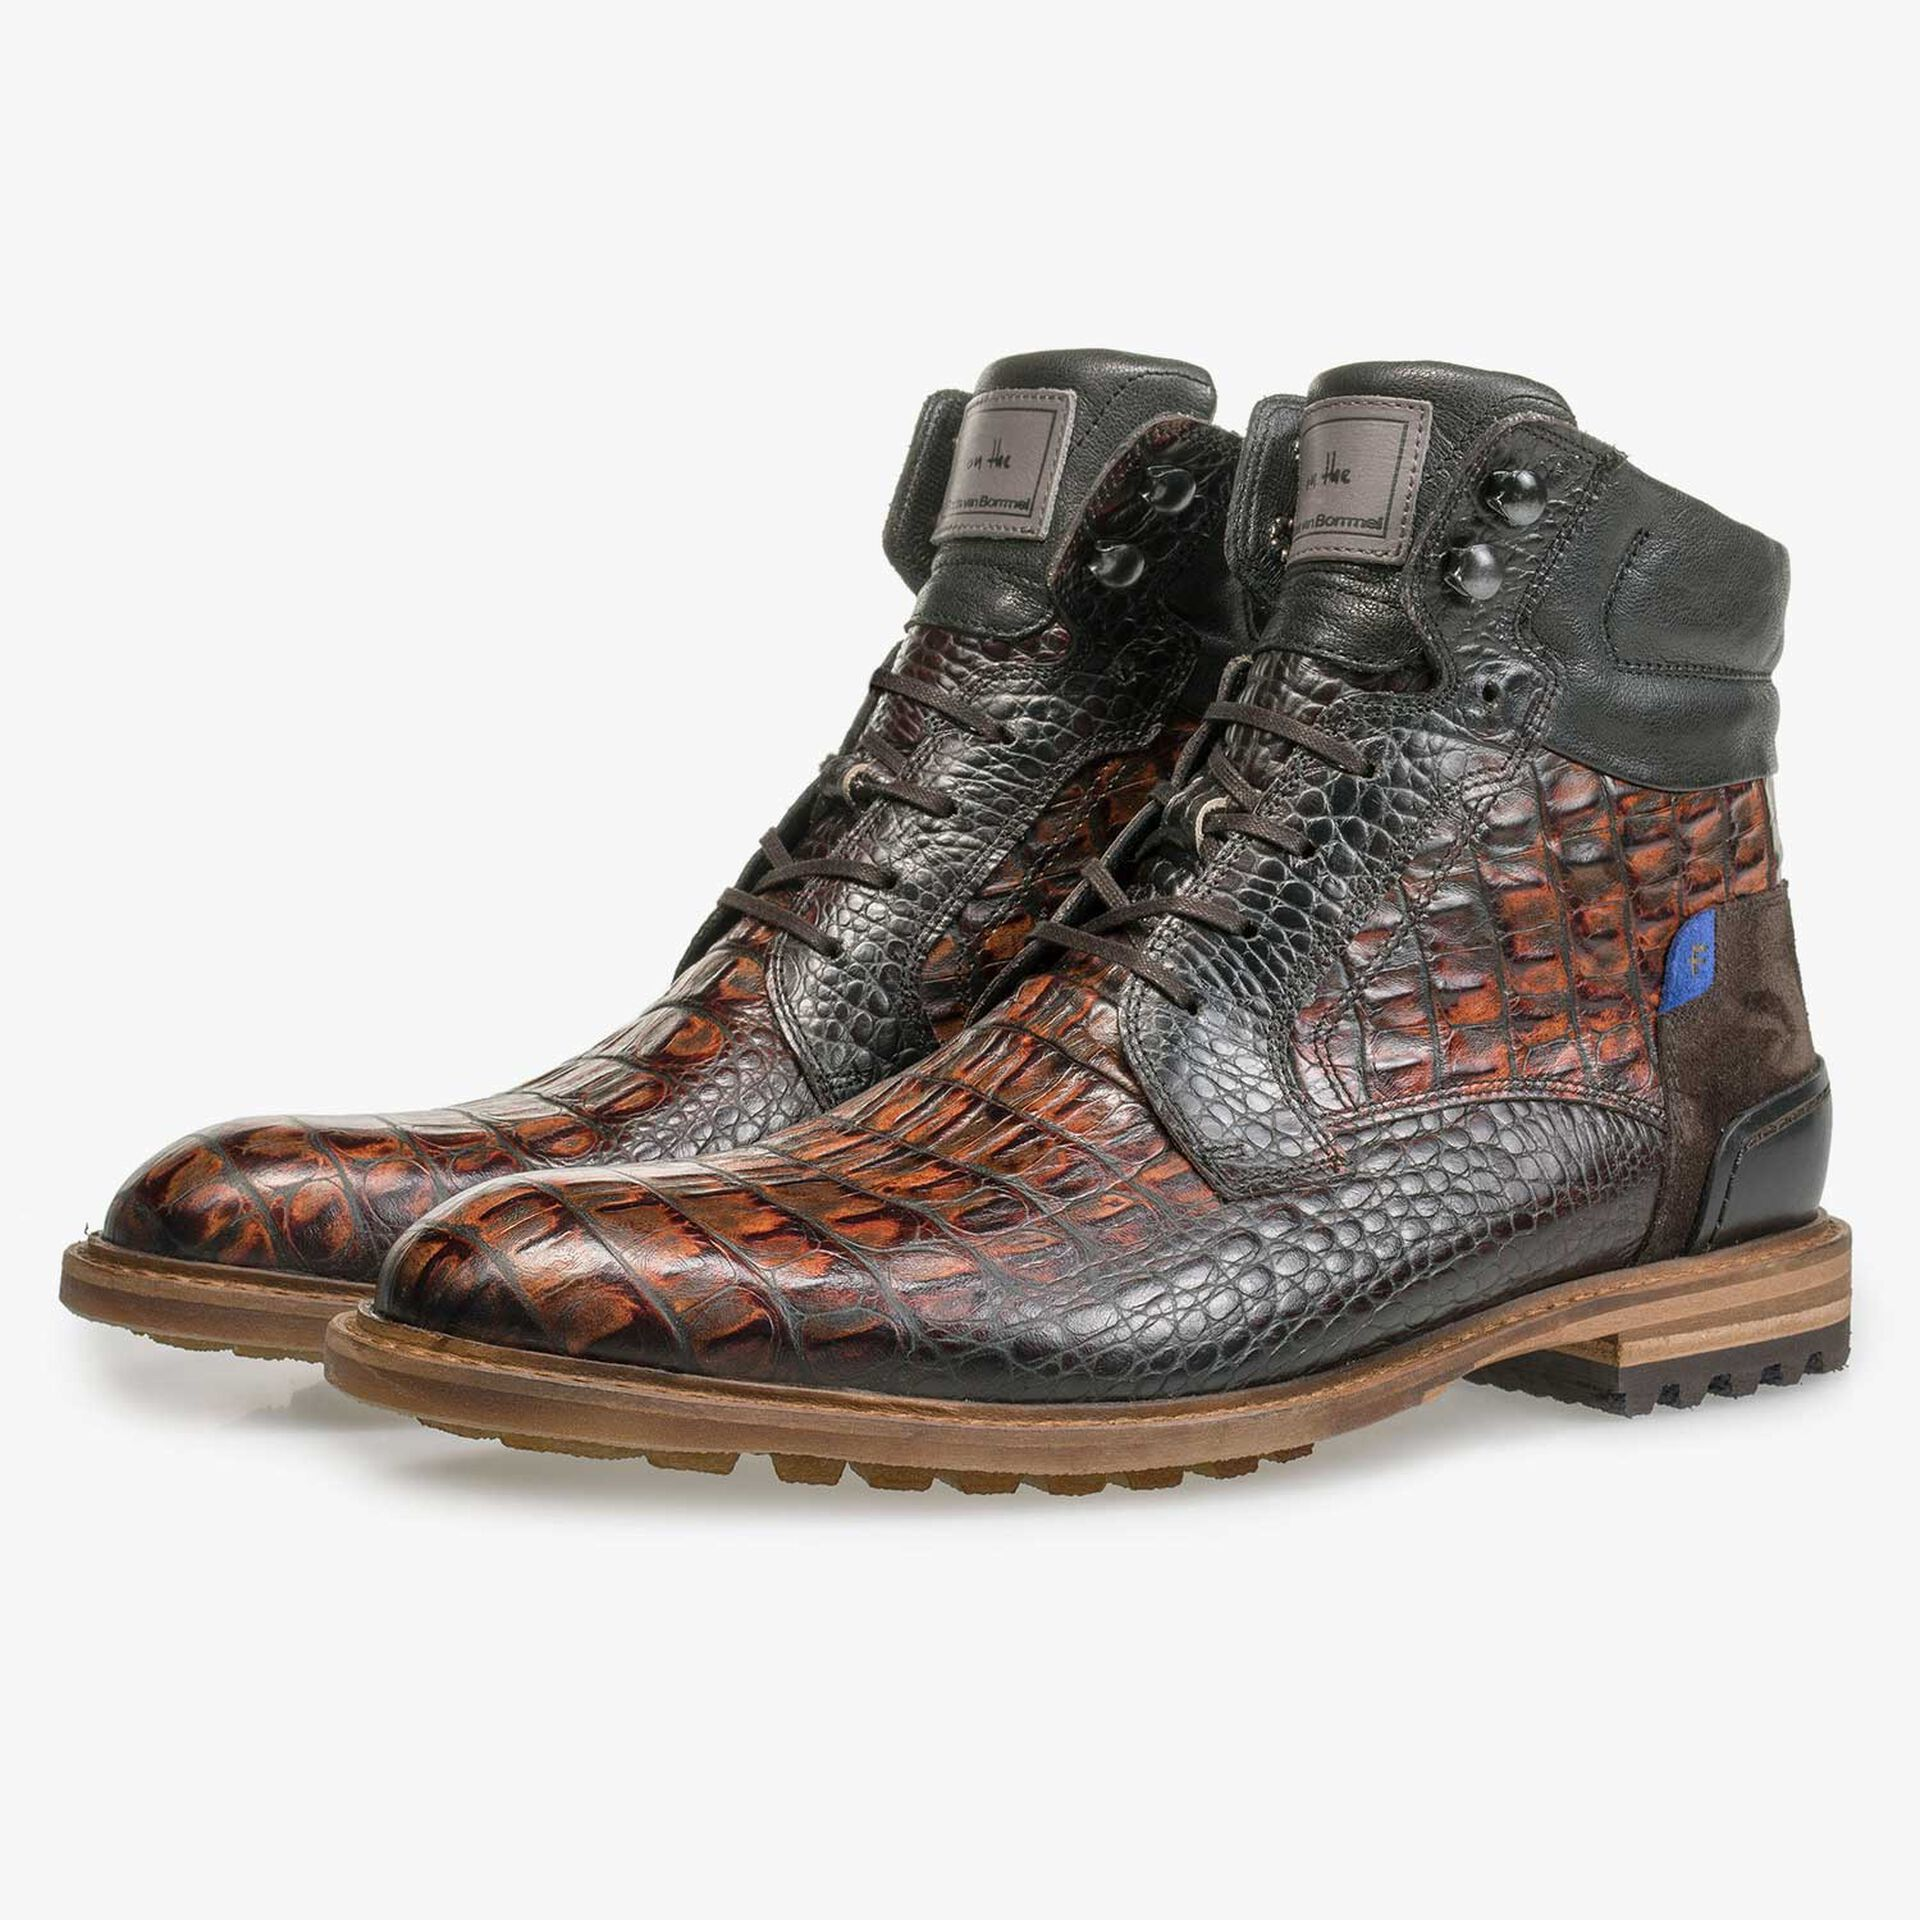 Brown calf leather lace boot with croco print